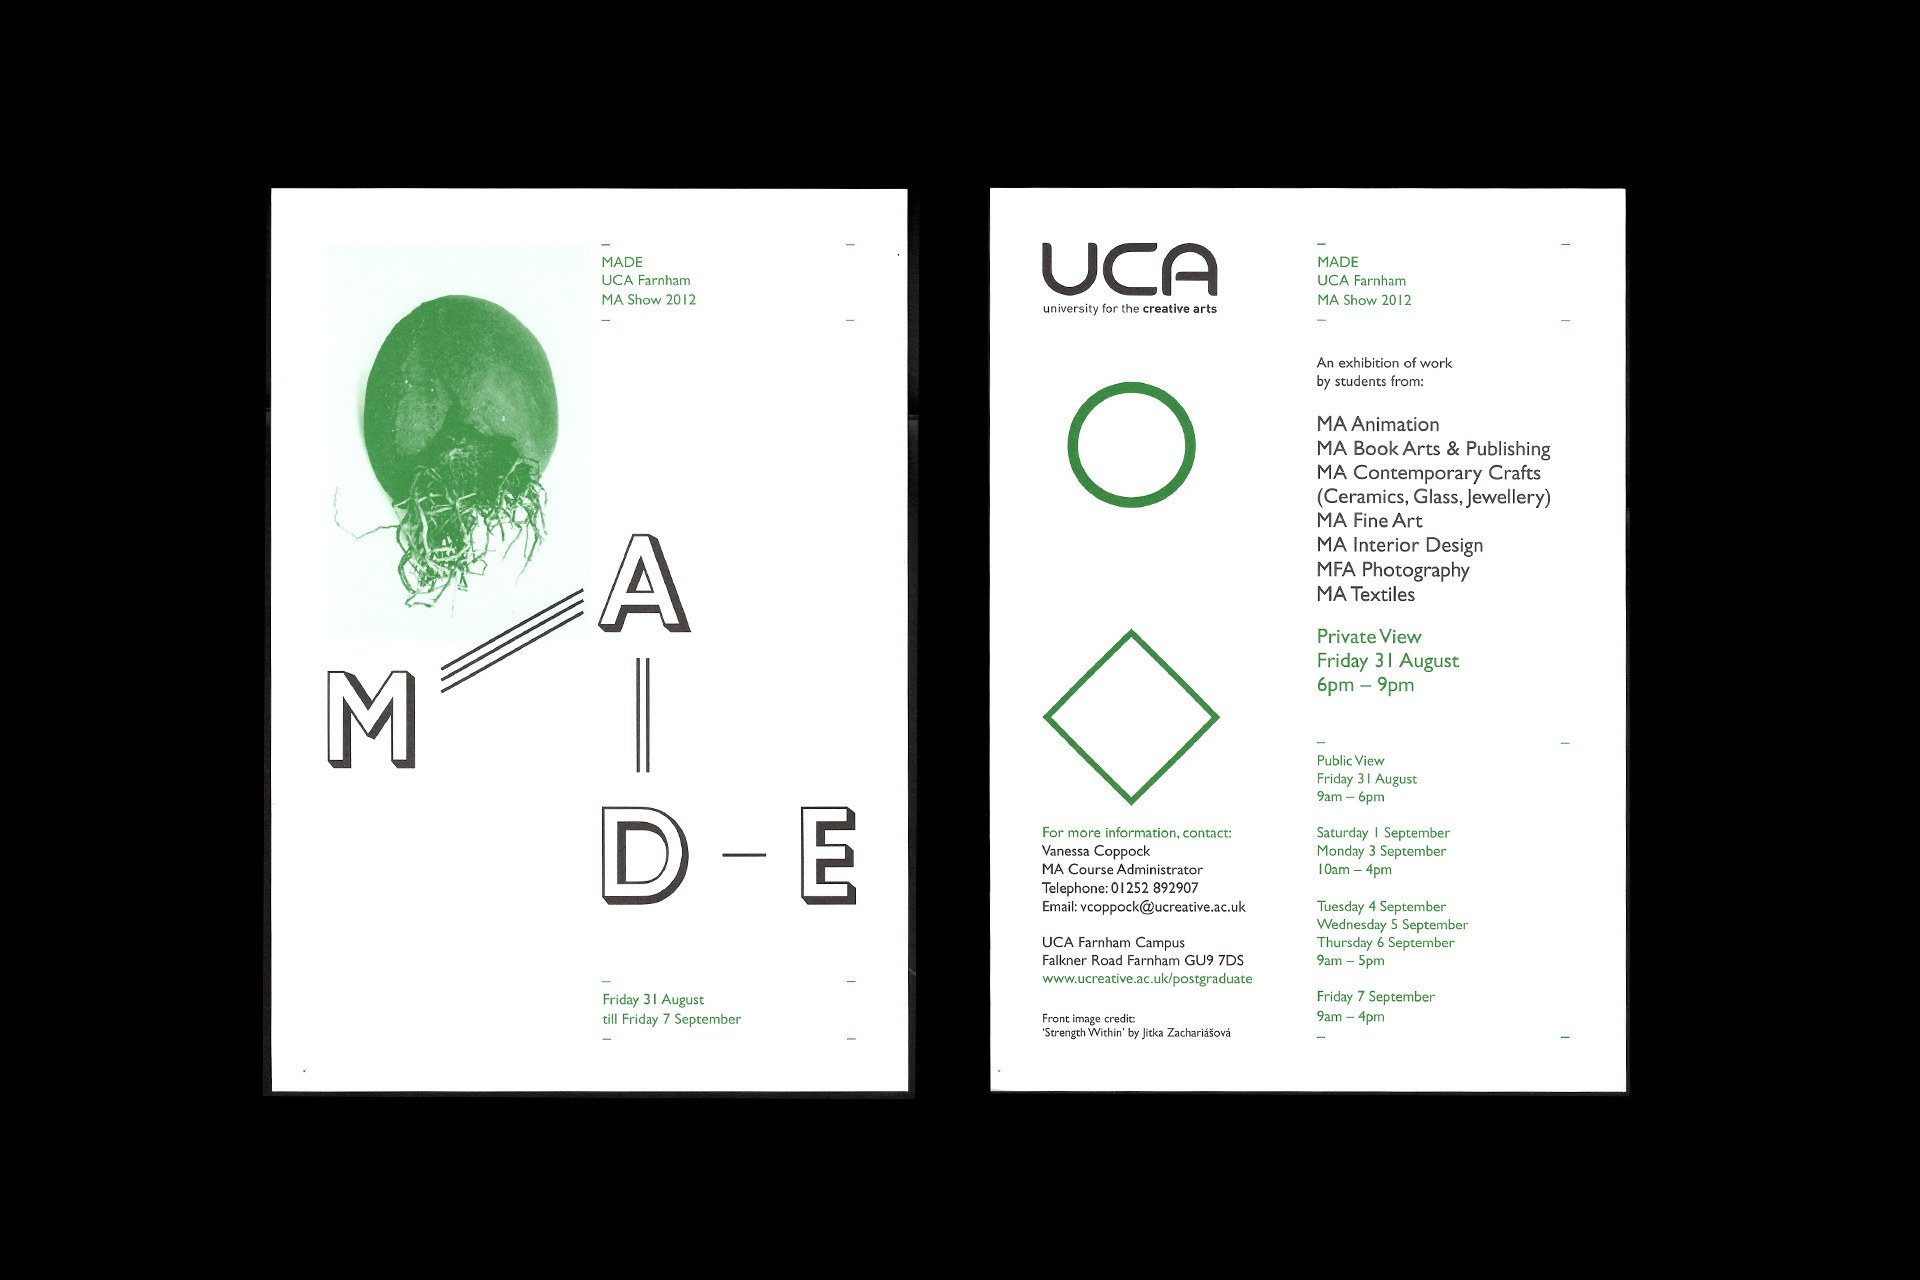 The front & reverse of the invite for the UCA MA Show 2012